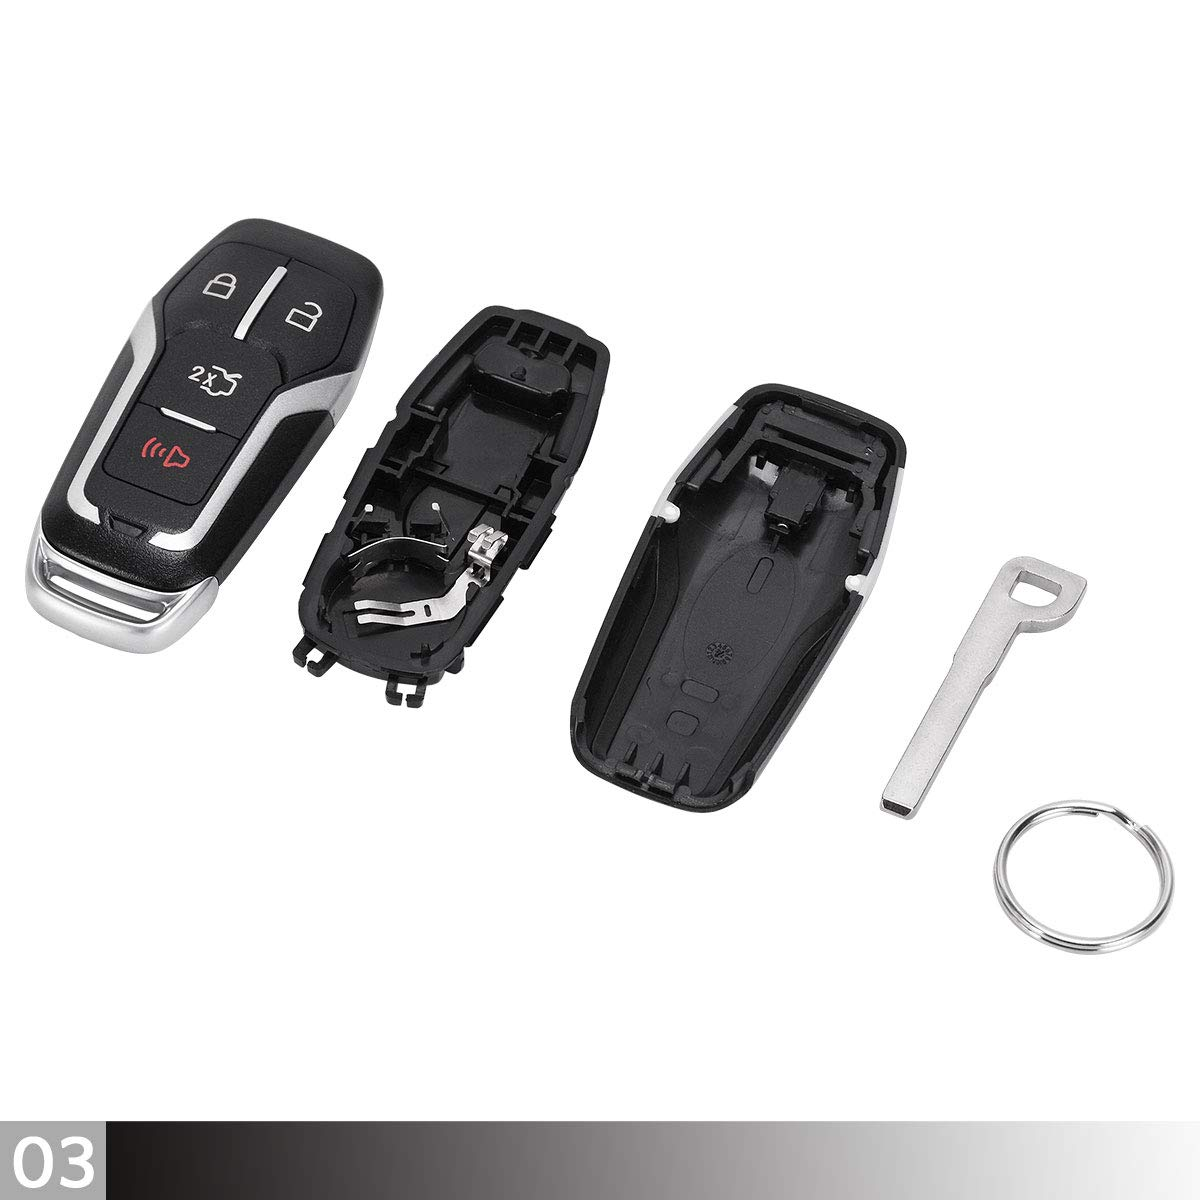 Maxiii Keyless Entry Remote Car Key Fob Shell Case 4 Button 1PC Compatible for 2015 2016 2017 Ford Mustang,for FCC ID M3N-A2C31243800